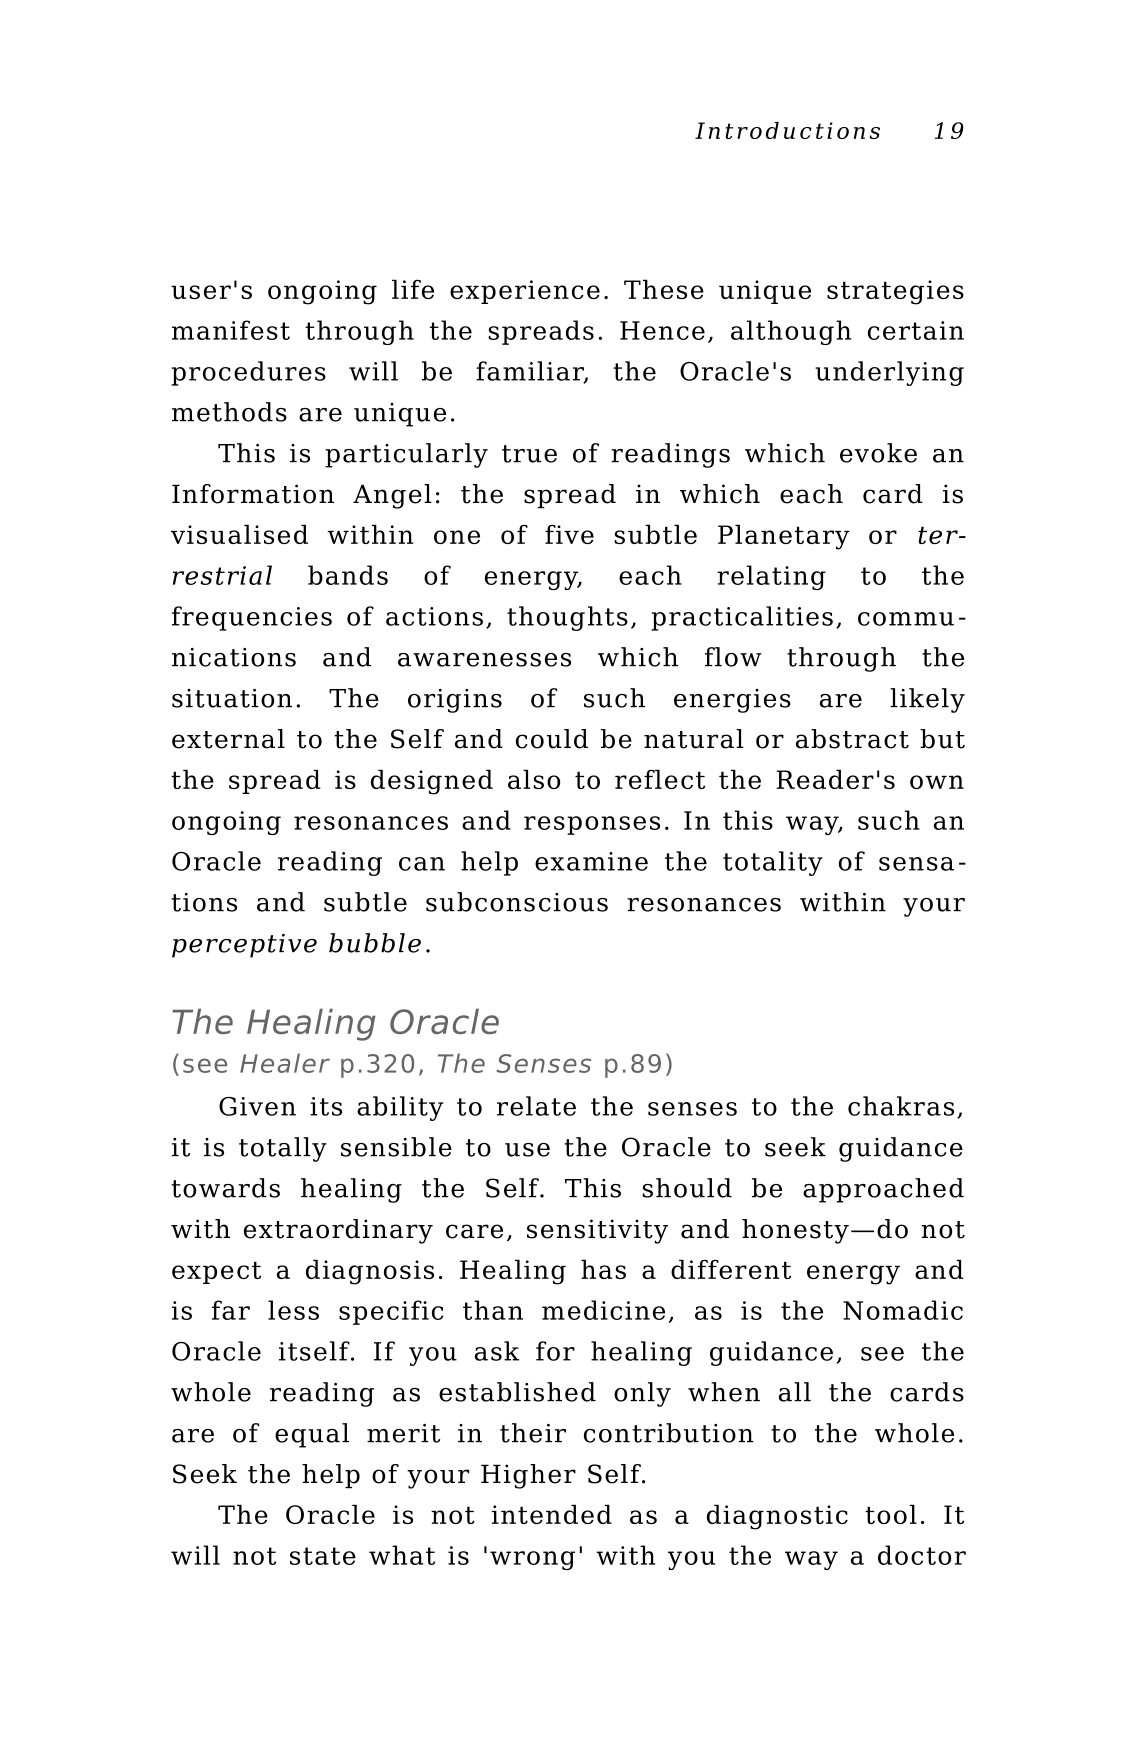 extract/Nomadic Oracle book/Introductions page 19